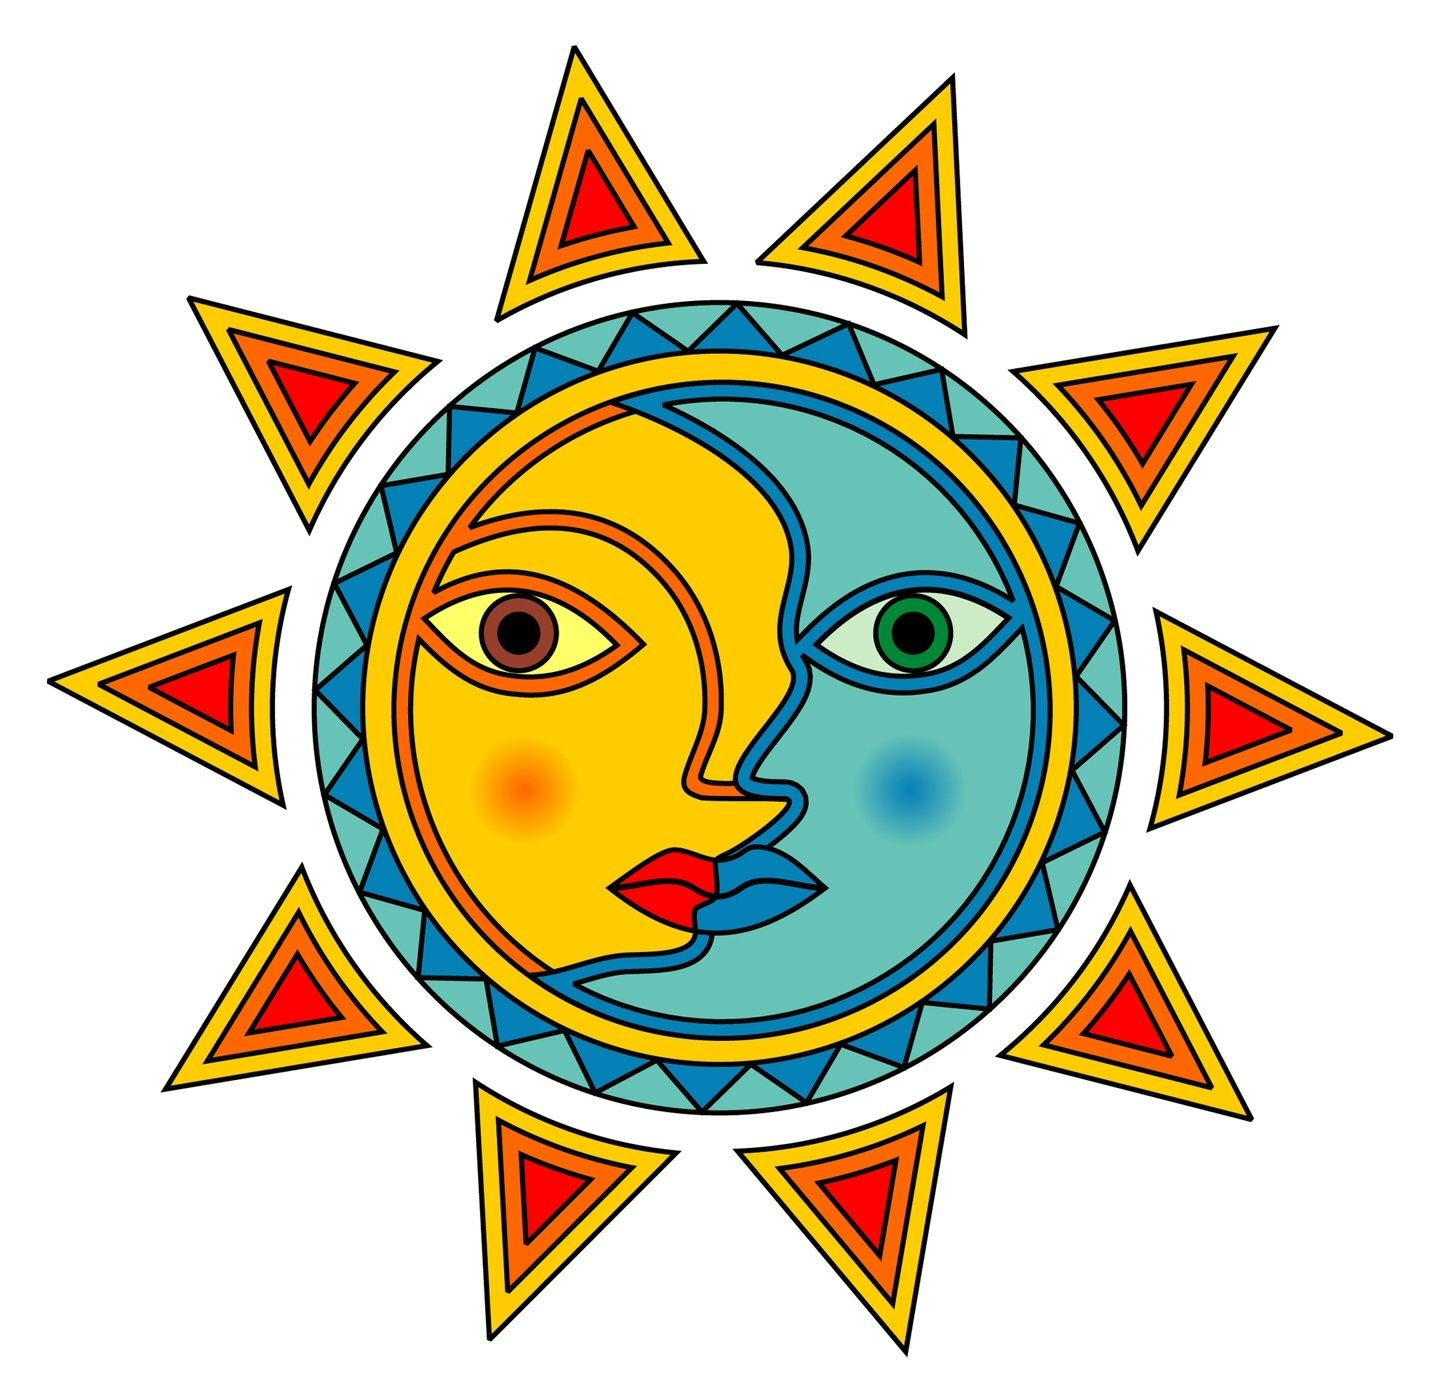 sun and moon clip art clipart best celestial art pinterest rh pinterest com au sun and moon clipart black and white sun and moon clipart black and white